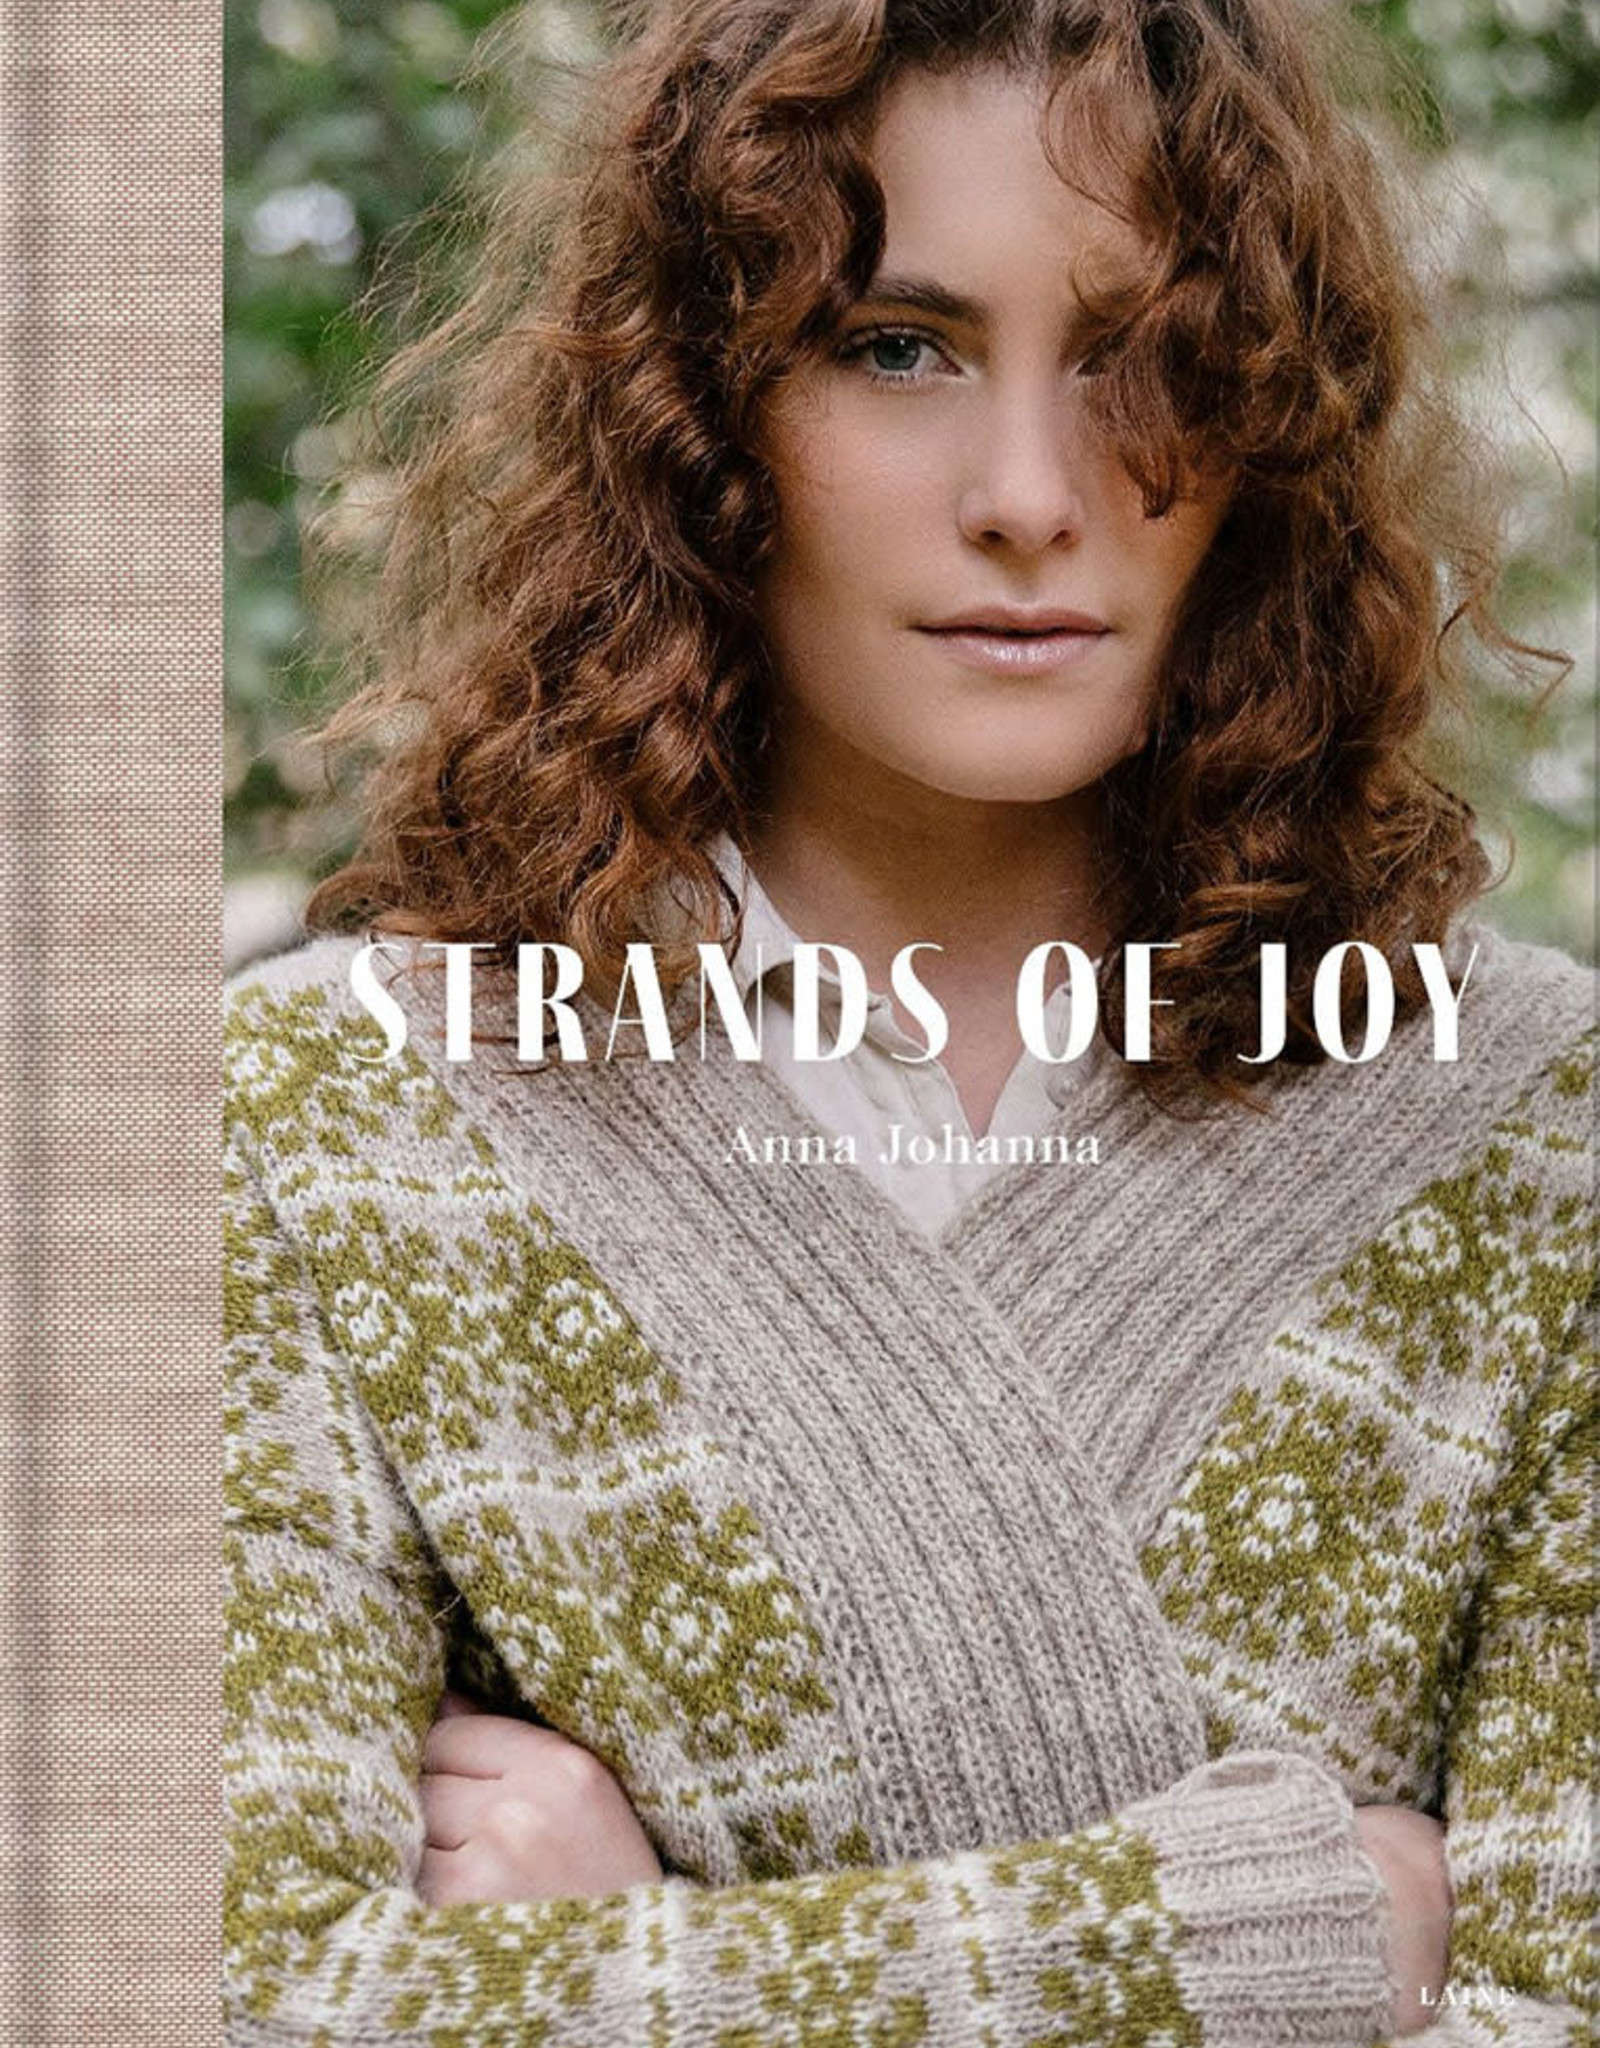 Book - Strands of Joy by Laine